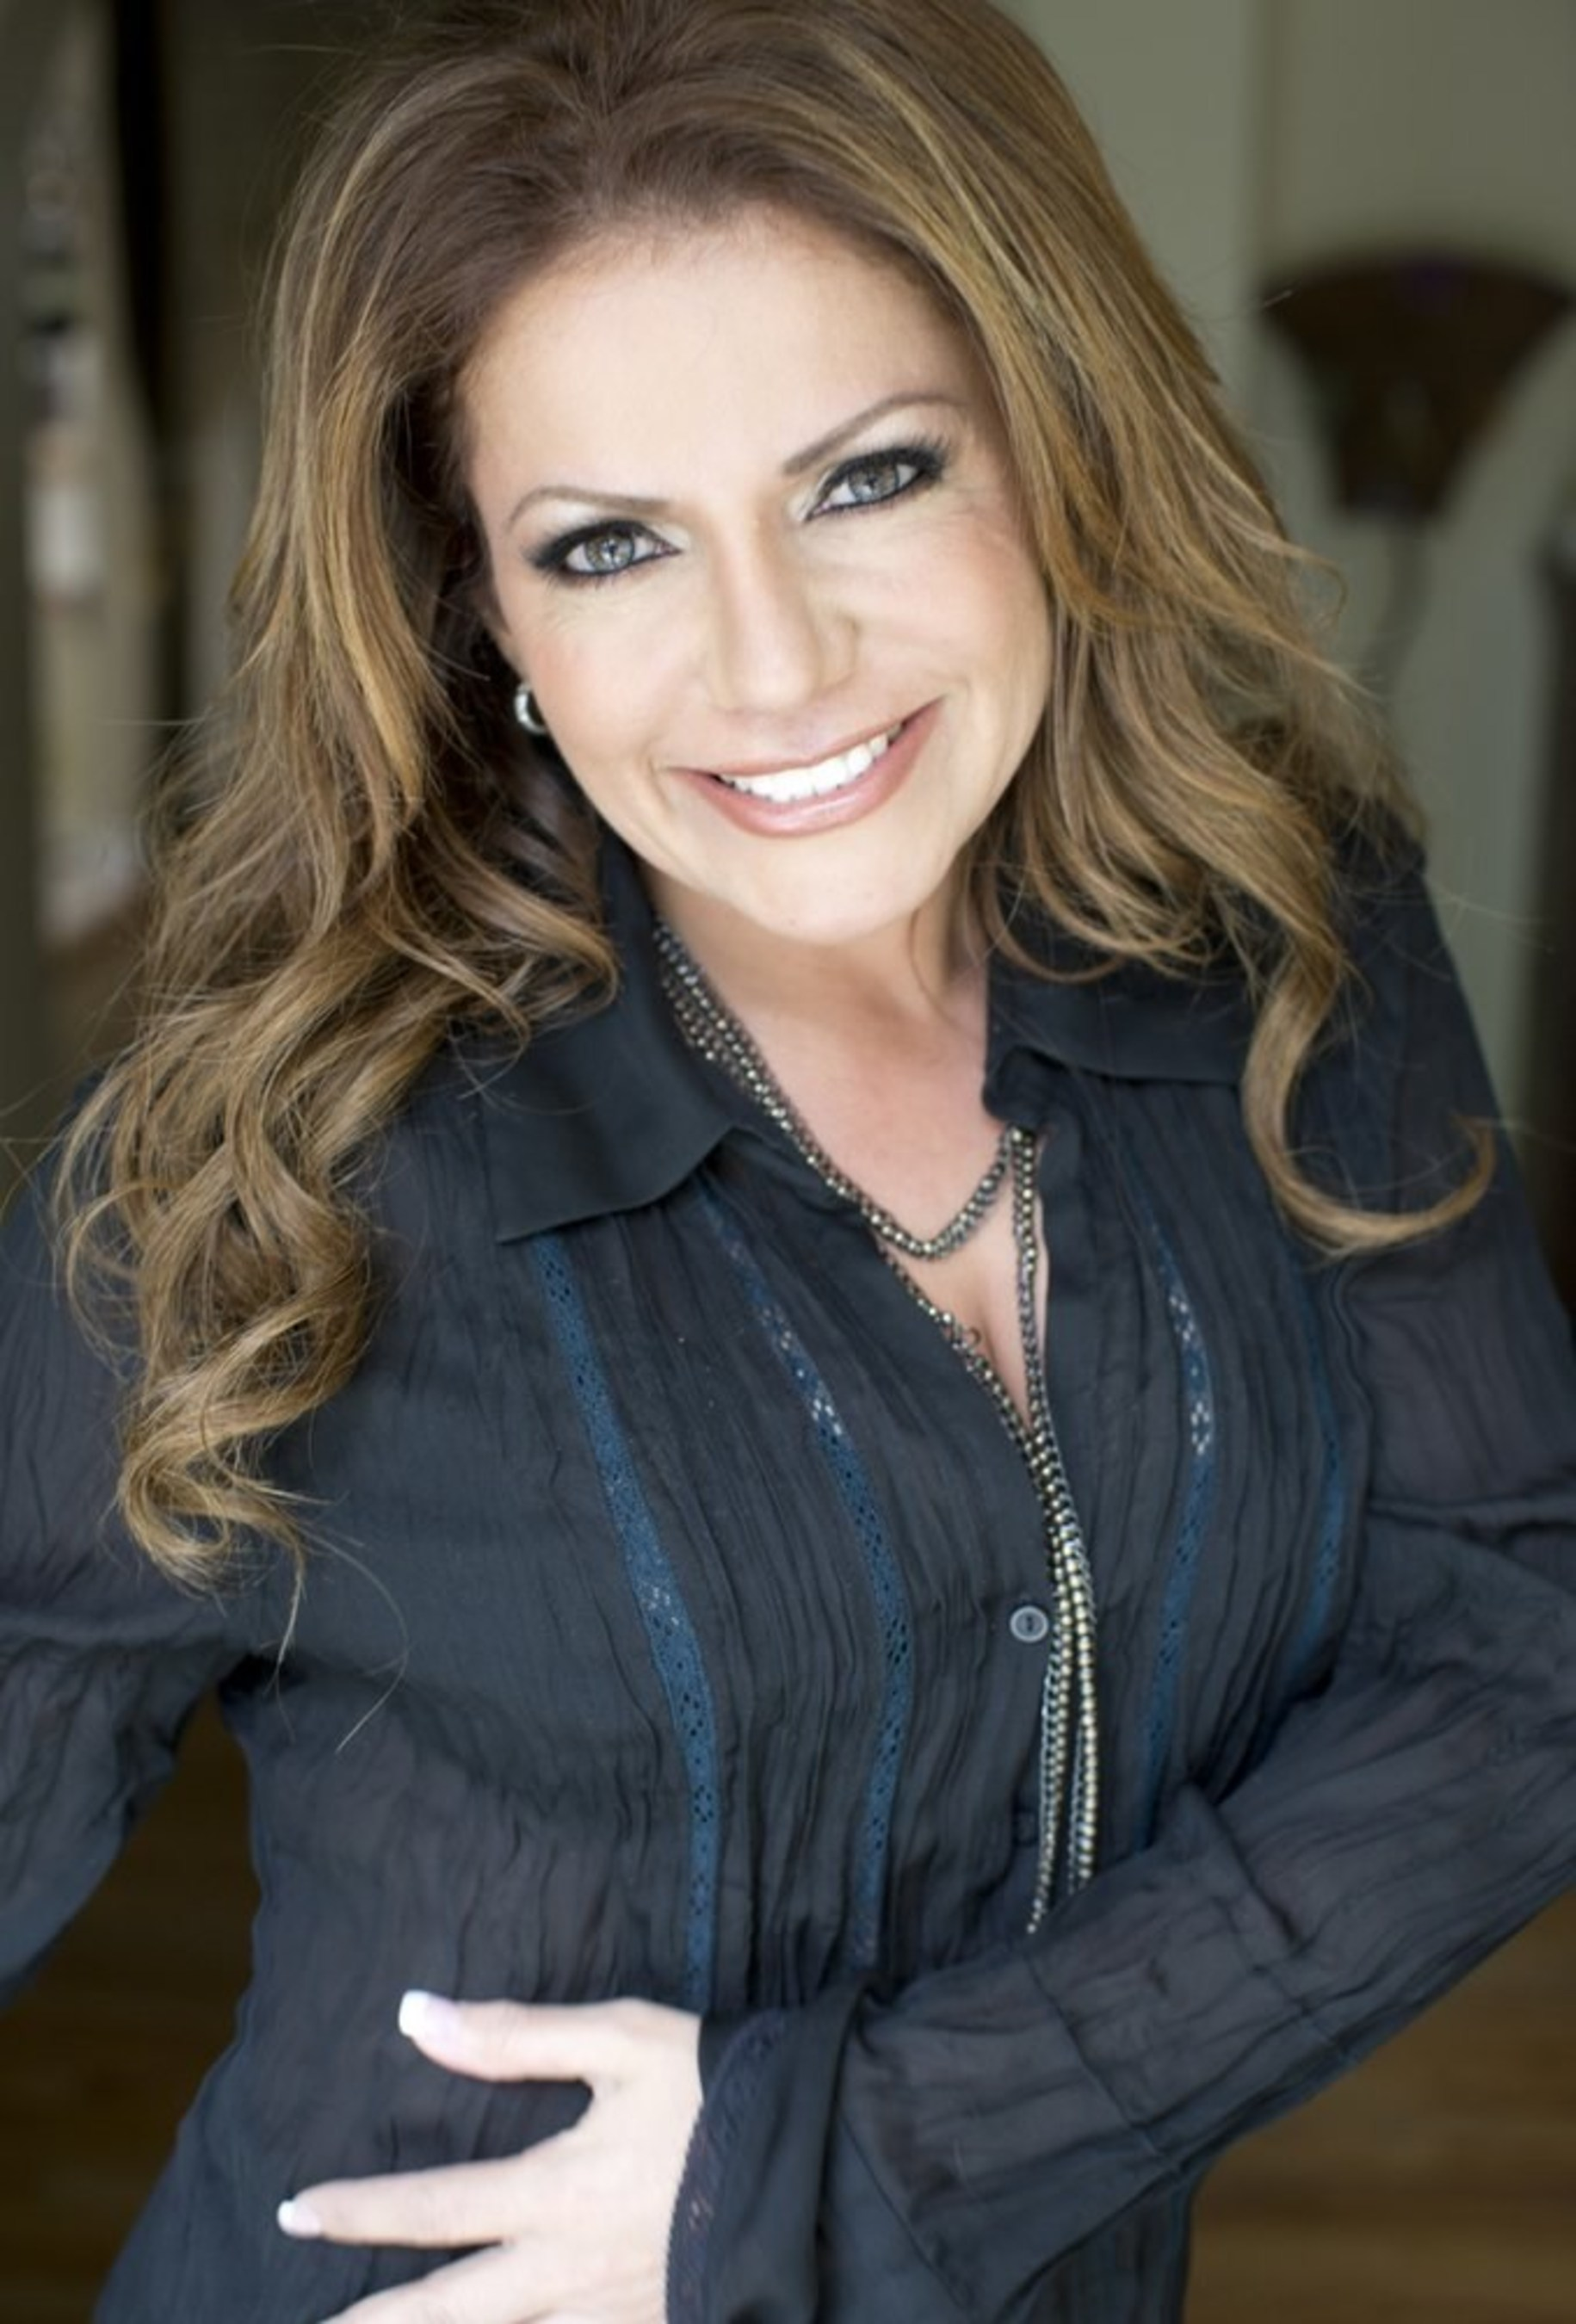 AWARD-WINNING, LATIN FOOD CHEF AND AUTHOR CHEF LALA TAPPED AS SPOKESPERSON FOR THE HERDEZ(R) BRAND